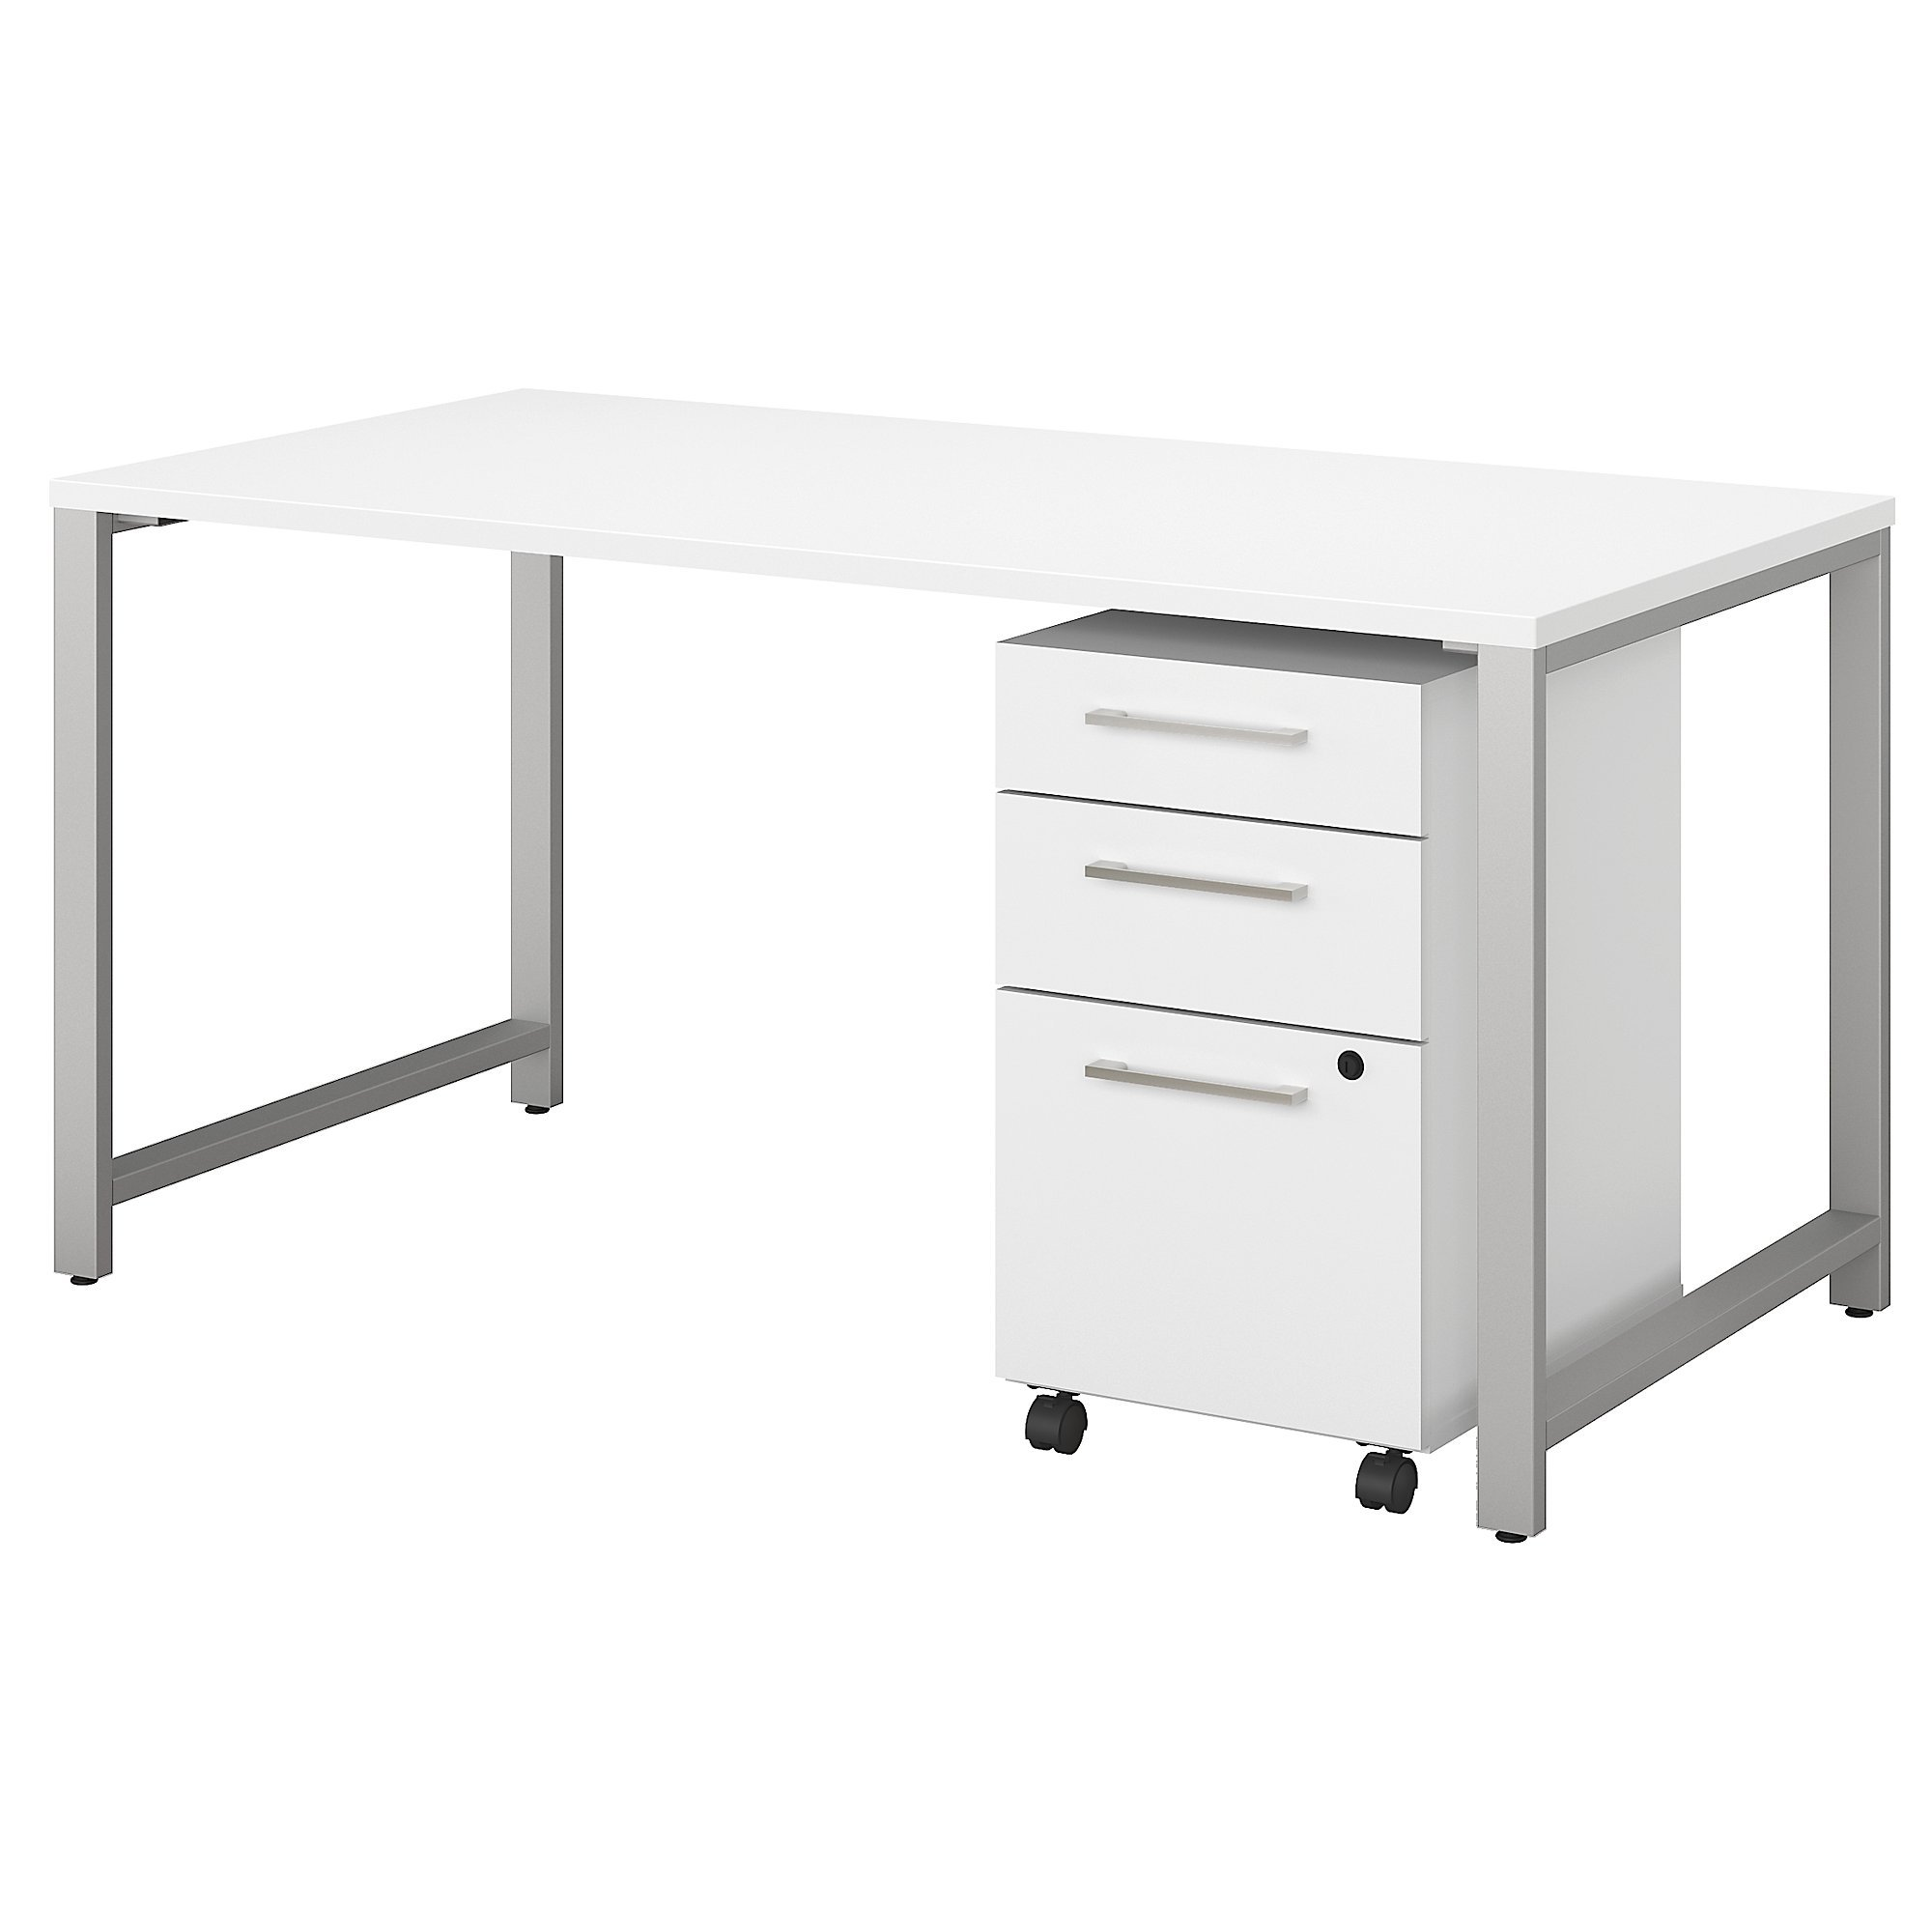 Bush Business Furniture 400 Series 60W x 30D Table Desk with 3 Drawer Mobile File Cabinet in White by Bush Business Furniture